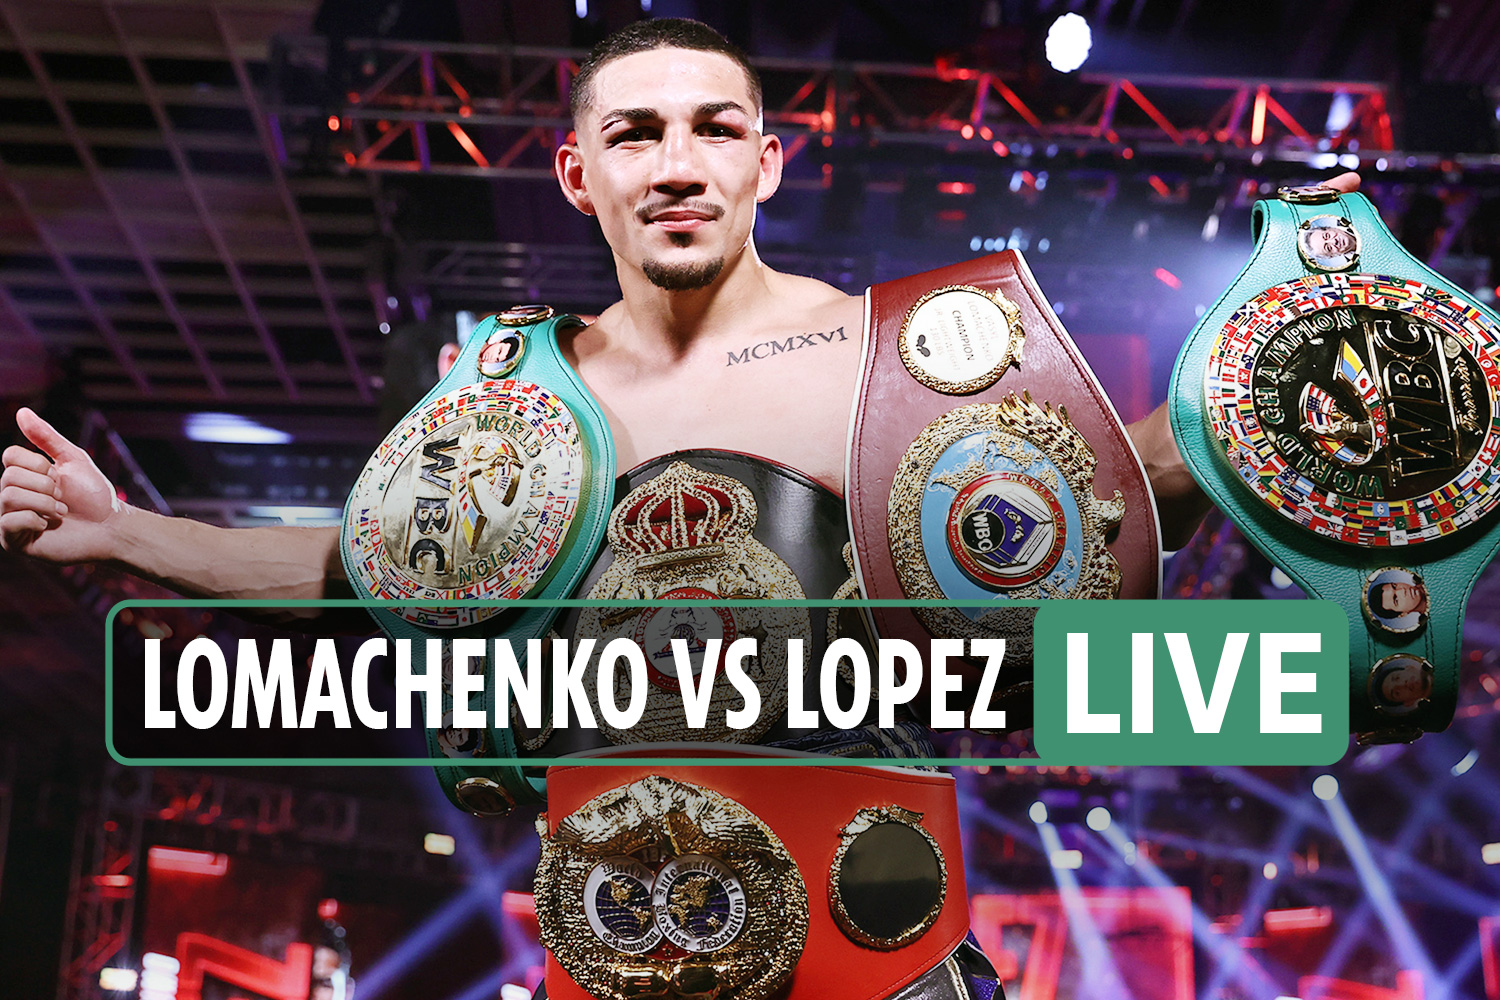 Lomachenko vs Lopez LIVE REACTION: Ukrainian STORMS out of ring after wide defeat as he gives update on his future